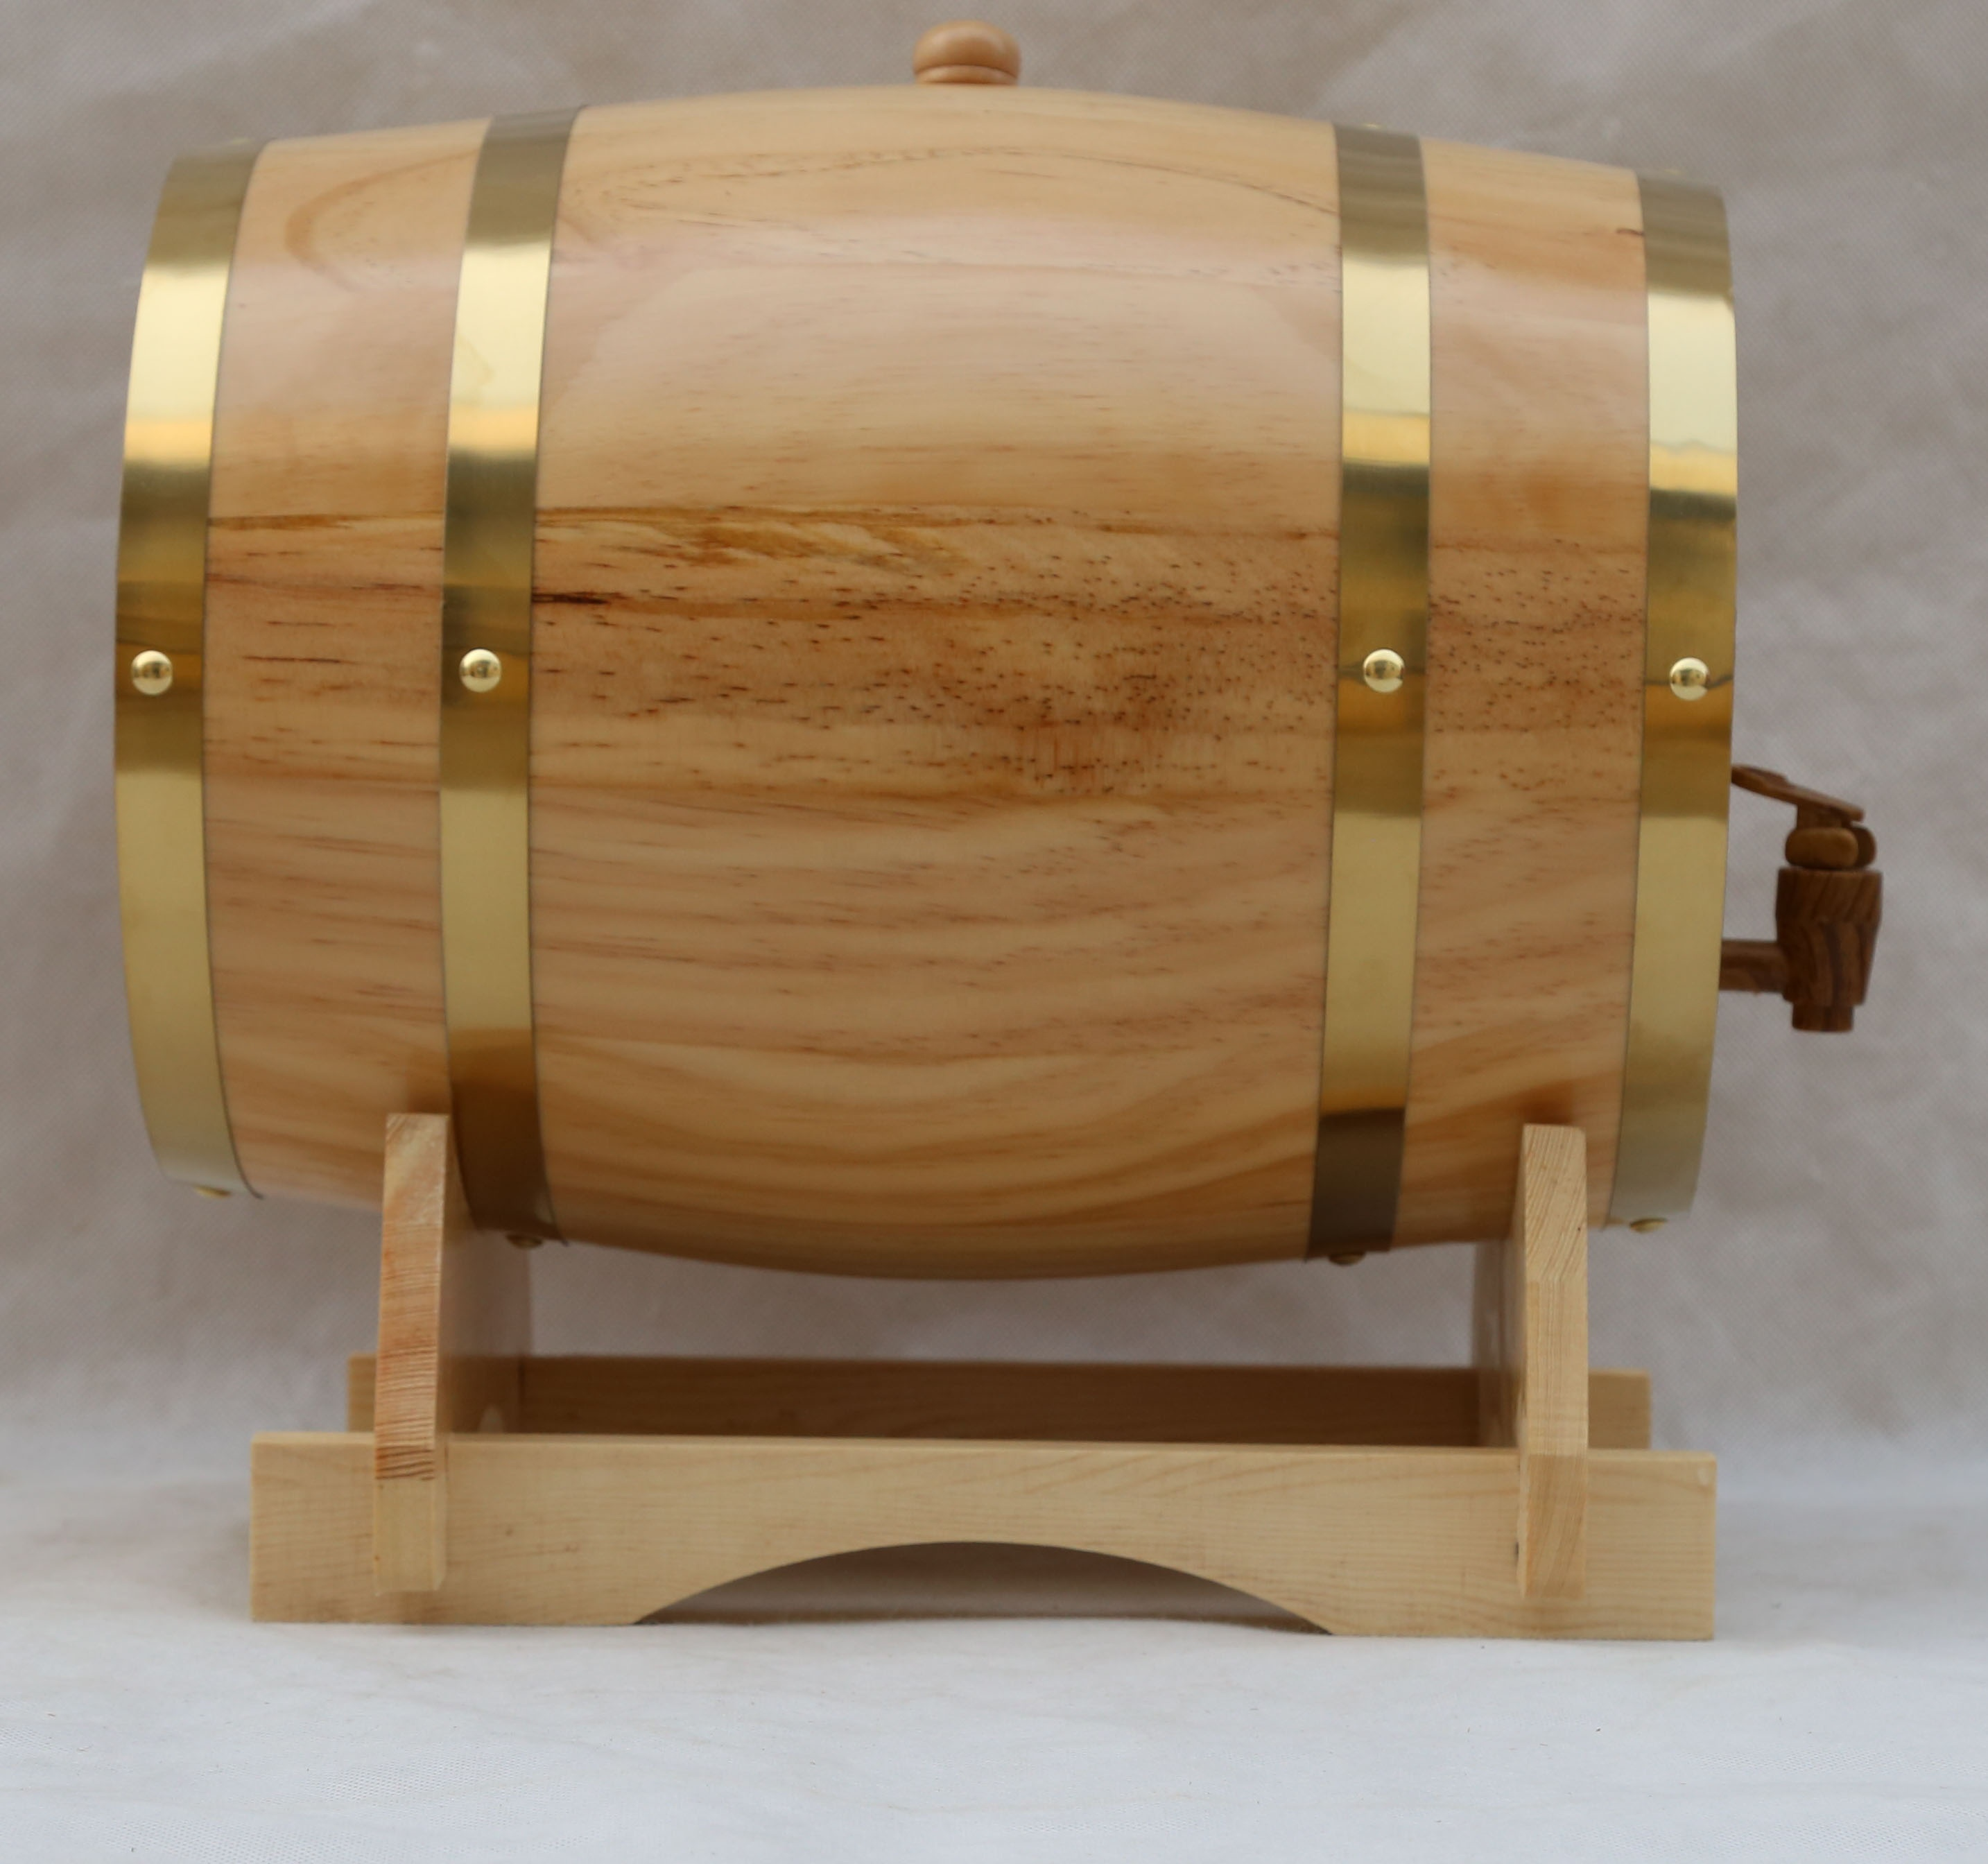 Hot Sale Cheap Used Decorative Mini Oak Wooden Winewhiskybeer Barrels For Sale Buy Used Decorative Mini Oak Wooden Winewhiskybeer Barrelsmini